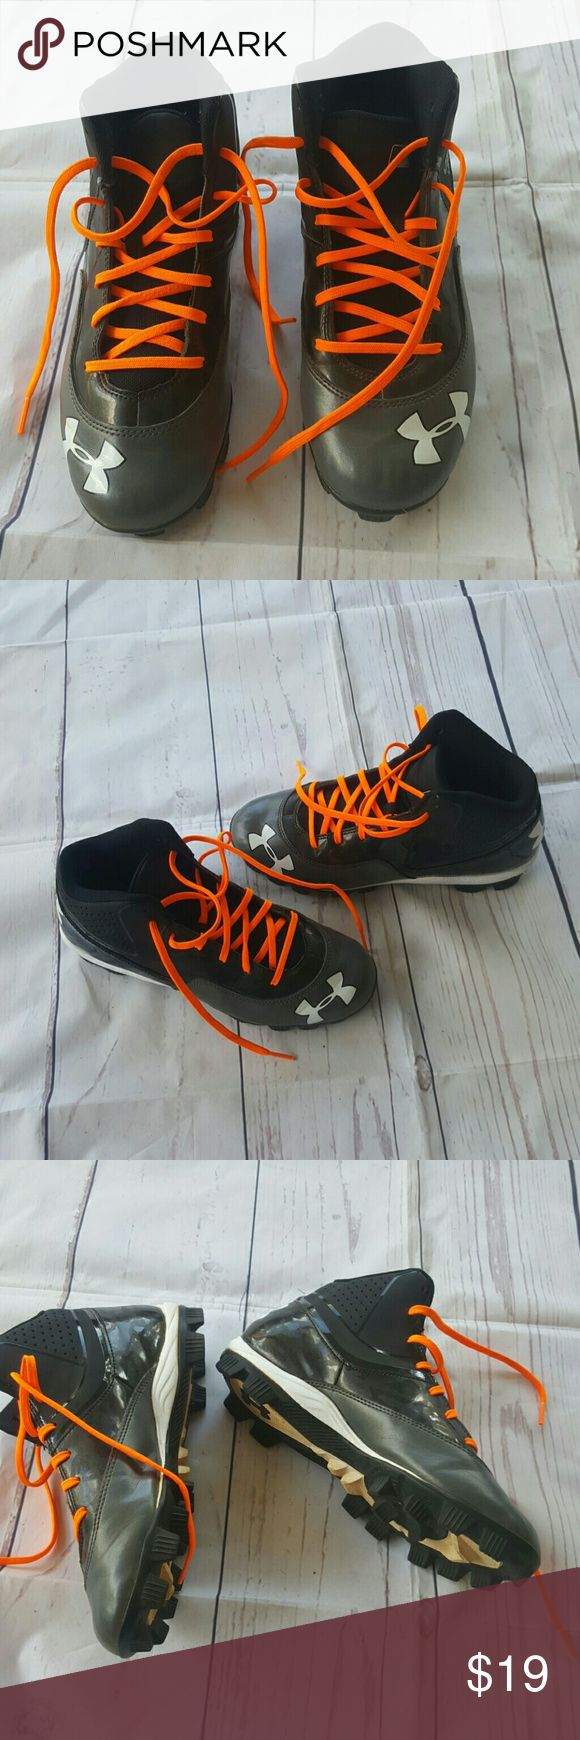 under armour shoes high tops black. 6y under armour high top cleats excellent used black with bright shoes tops